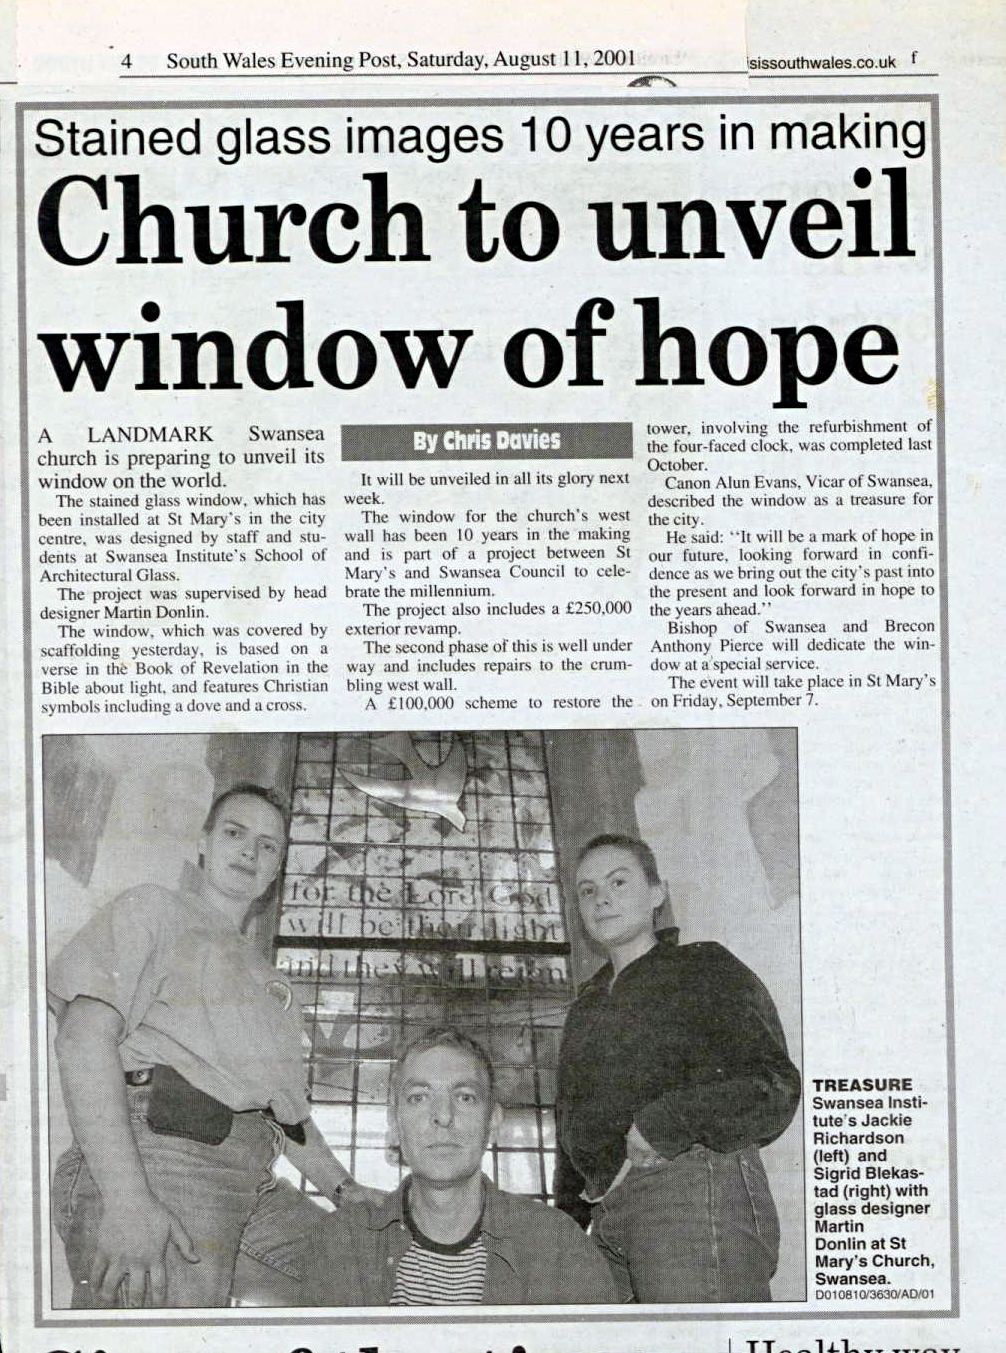 South Wales Evening Post August 11 2001.jpg